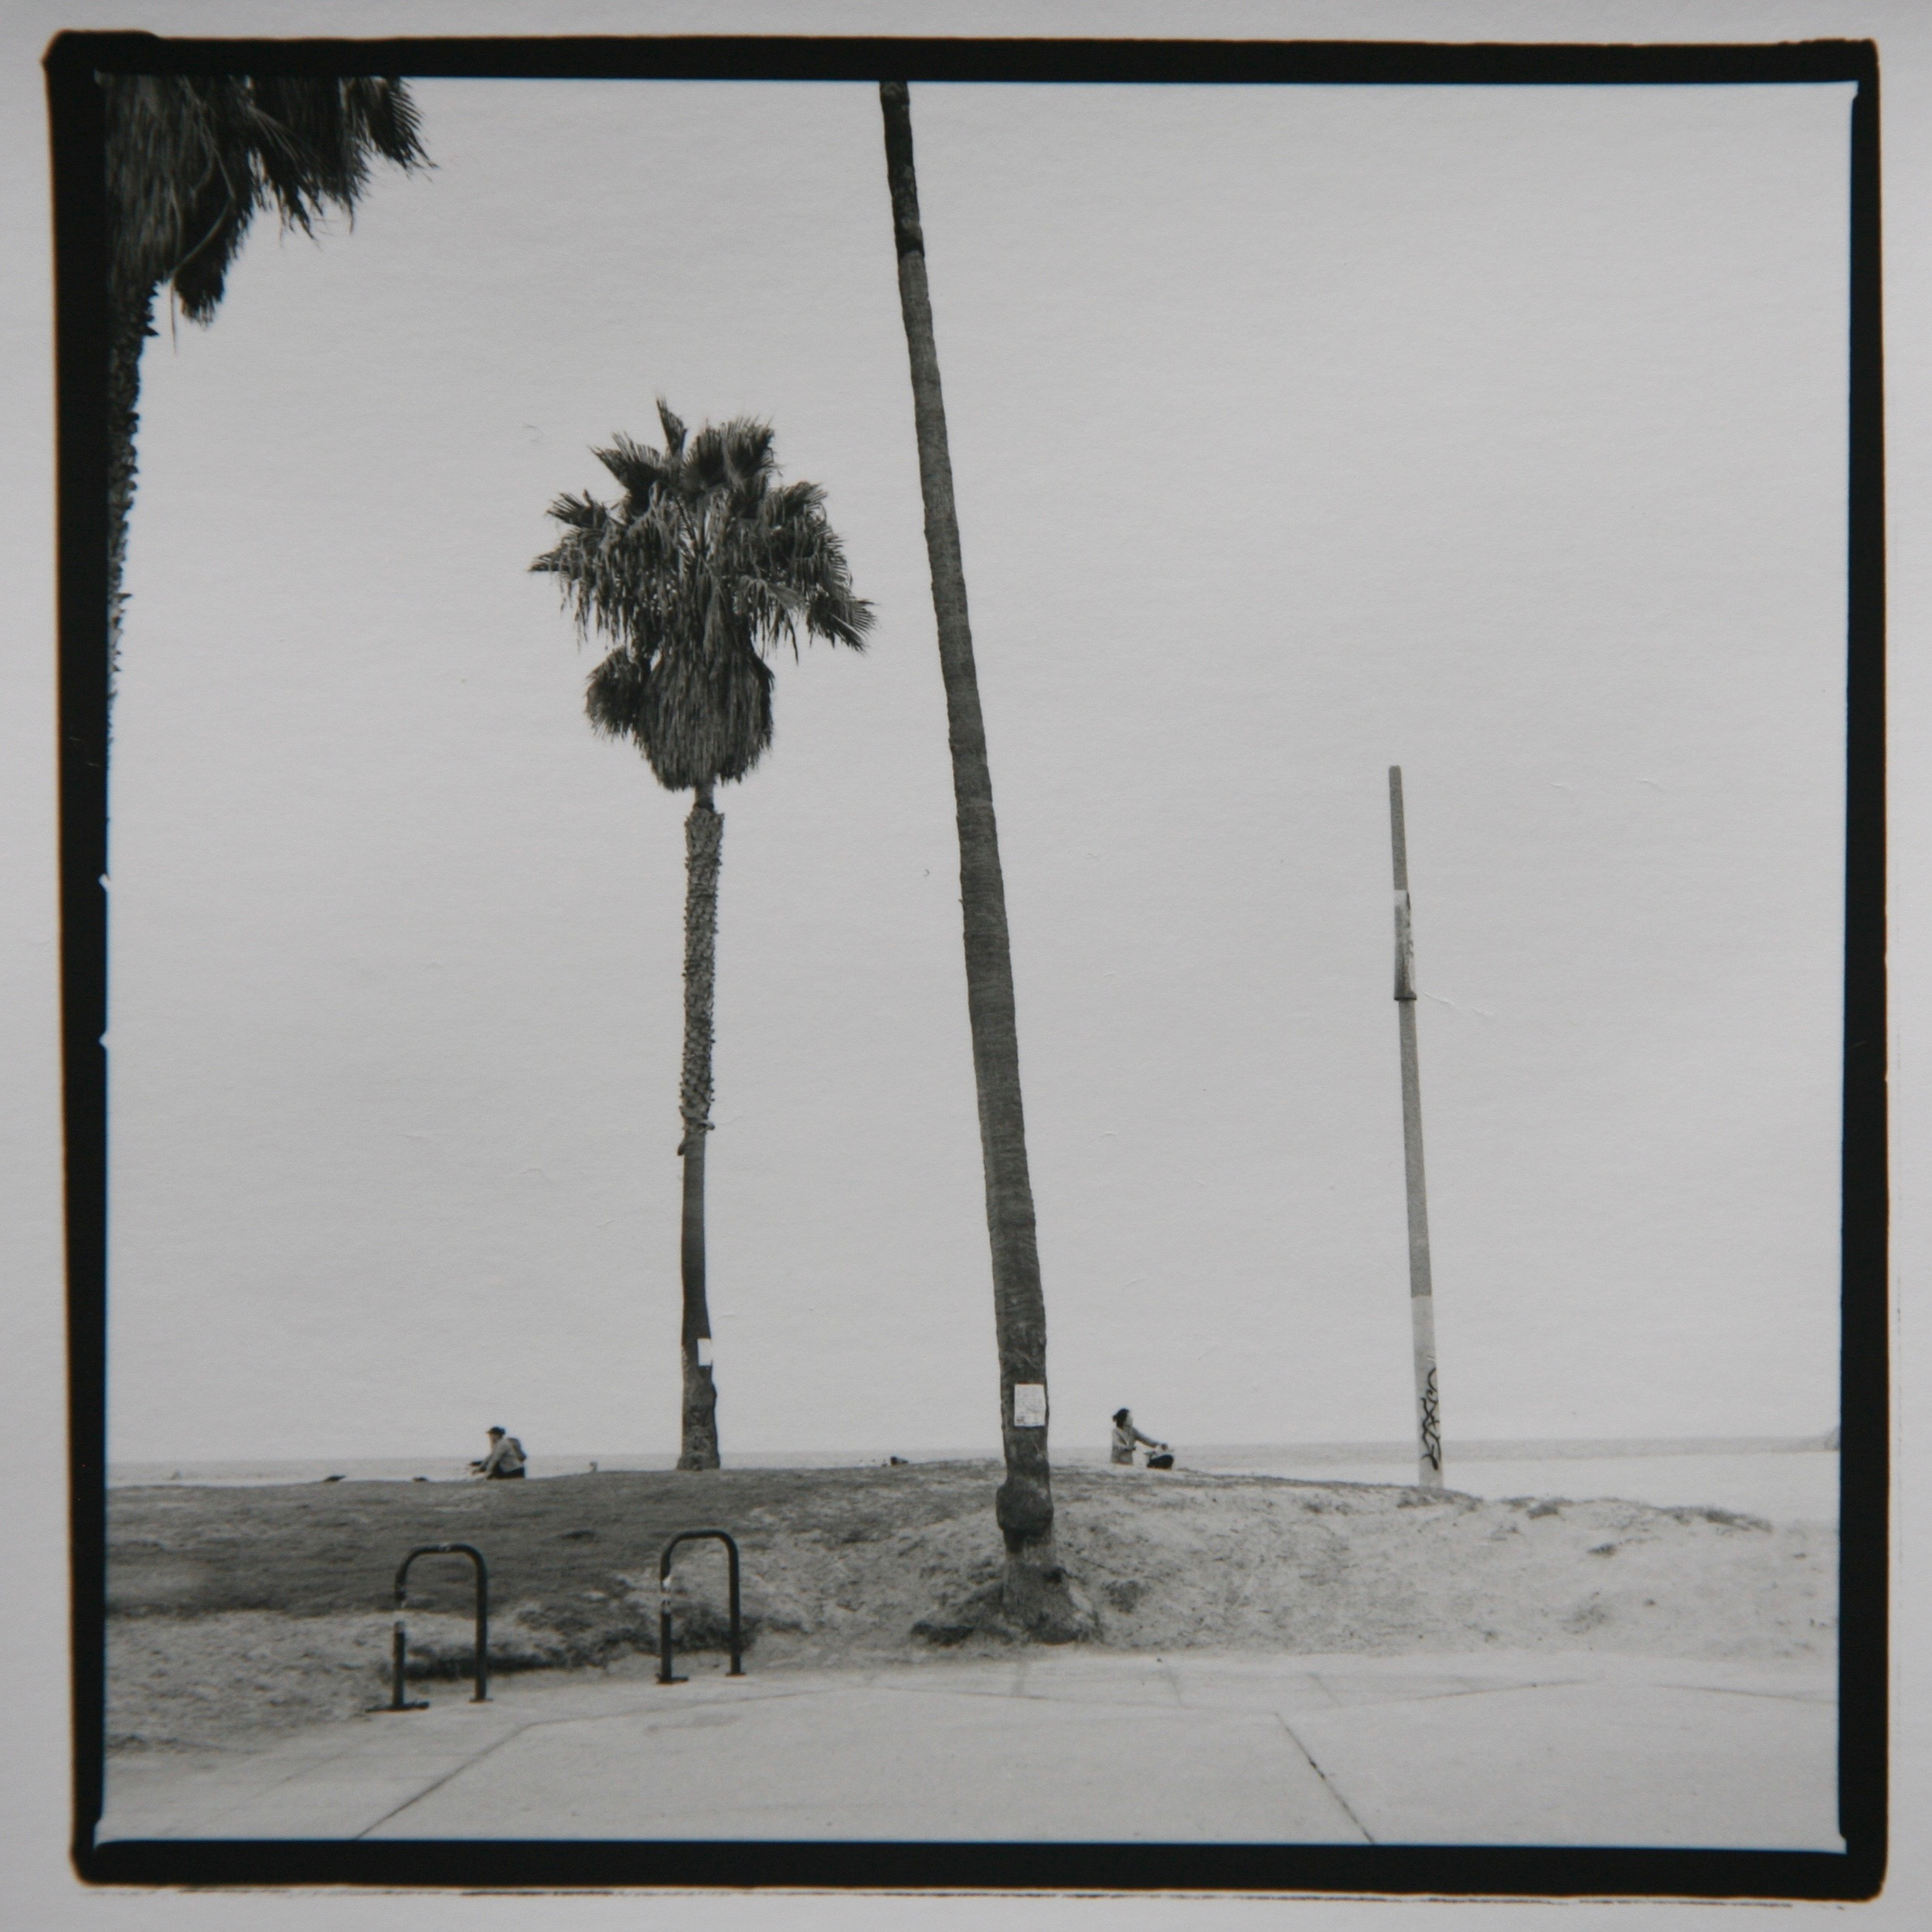 Venice CA Real Estate | 10-2015 | Tri-X | Rodinal | Hasselblad 500C 80mm | Peter Karnig